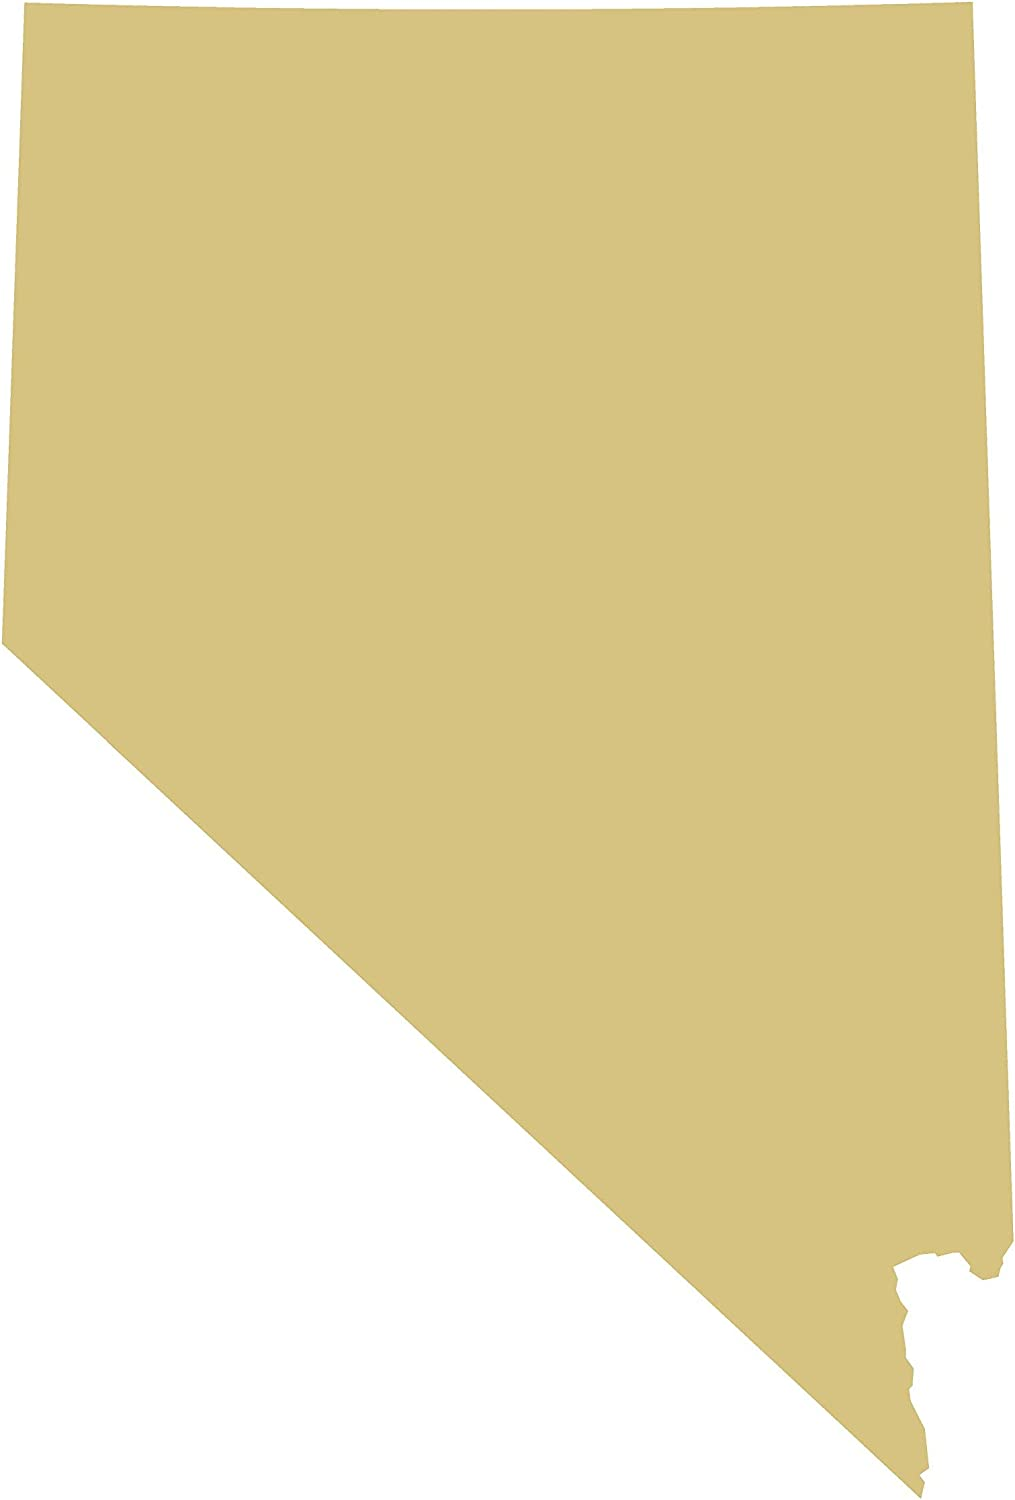 Nevada Cutout Unfinished Wood State Home Decor Everyday Sports Door Hanger MDF Shape Canvas Style 1 (6